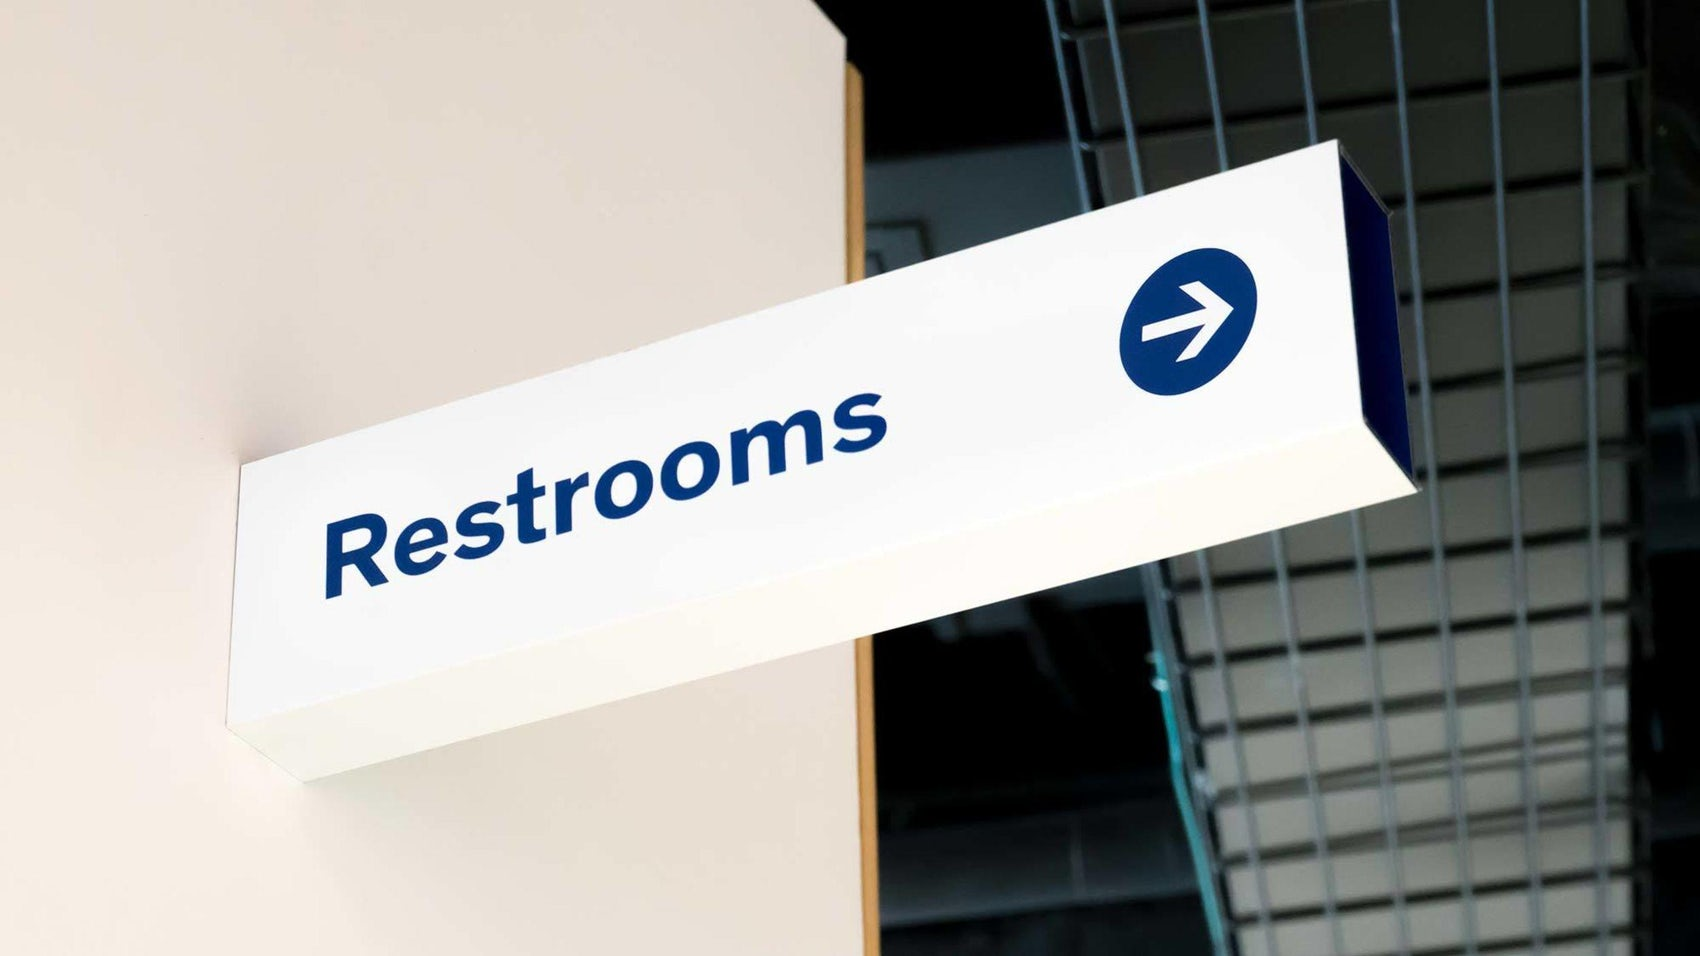 UIC Signage System Wayfinding Application